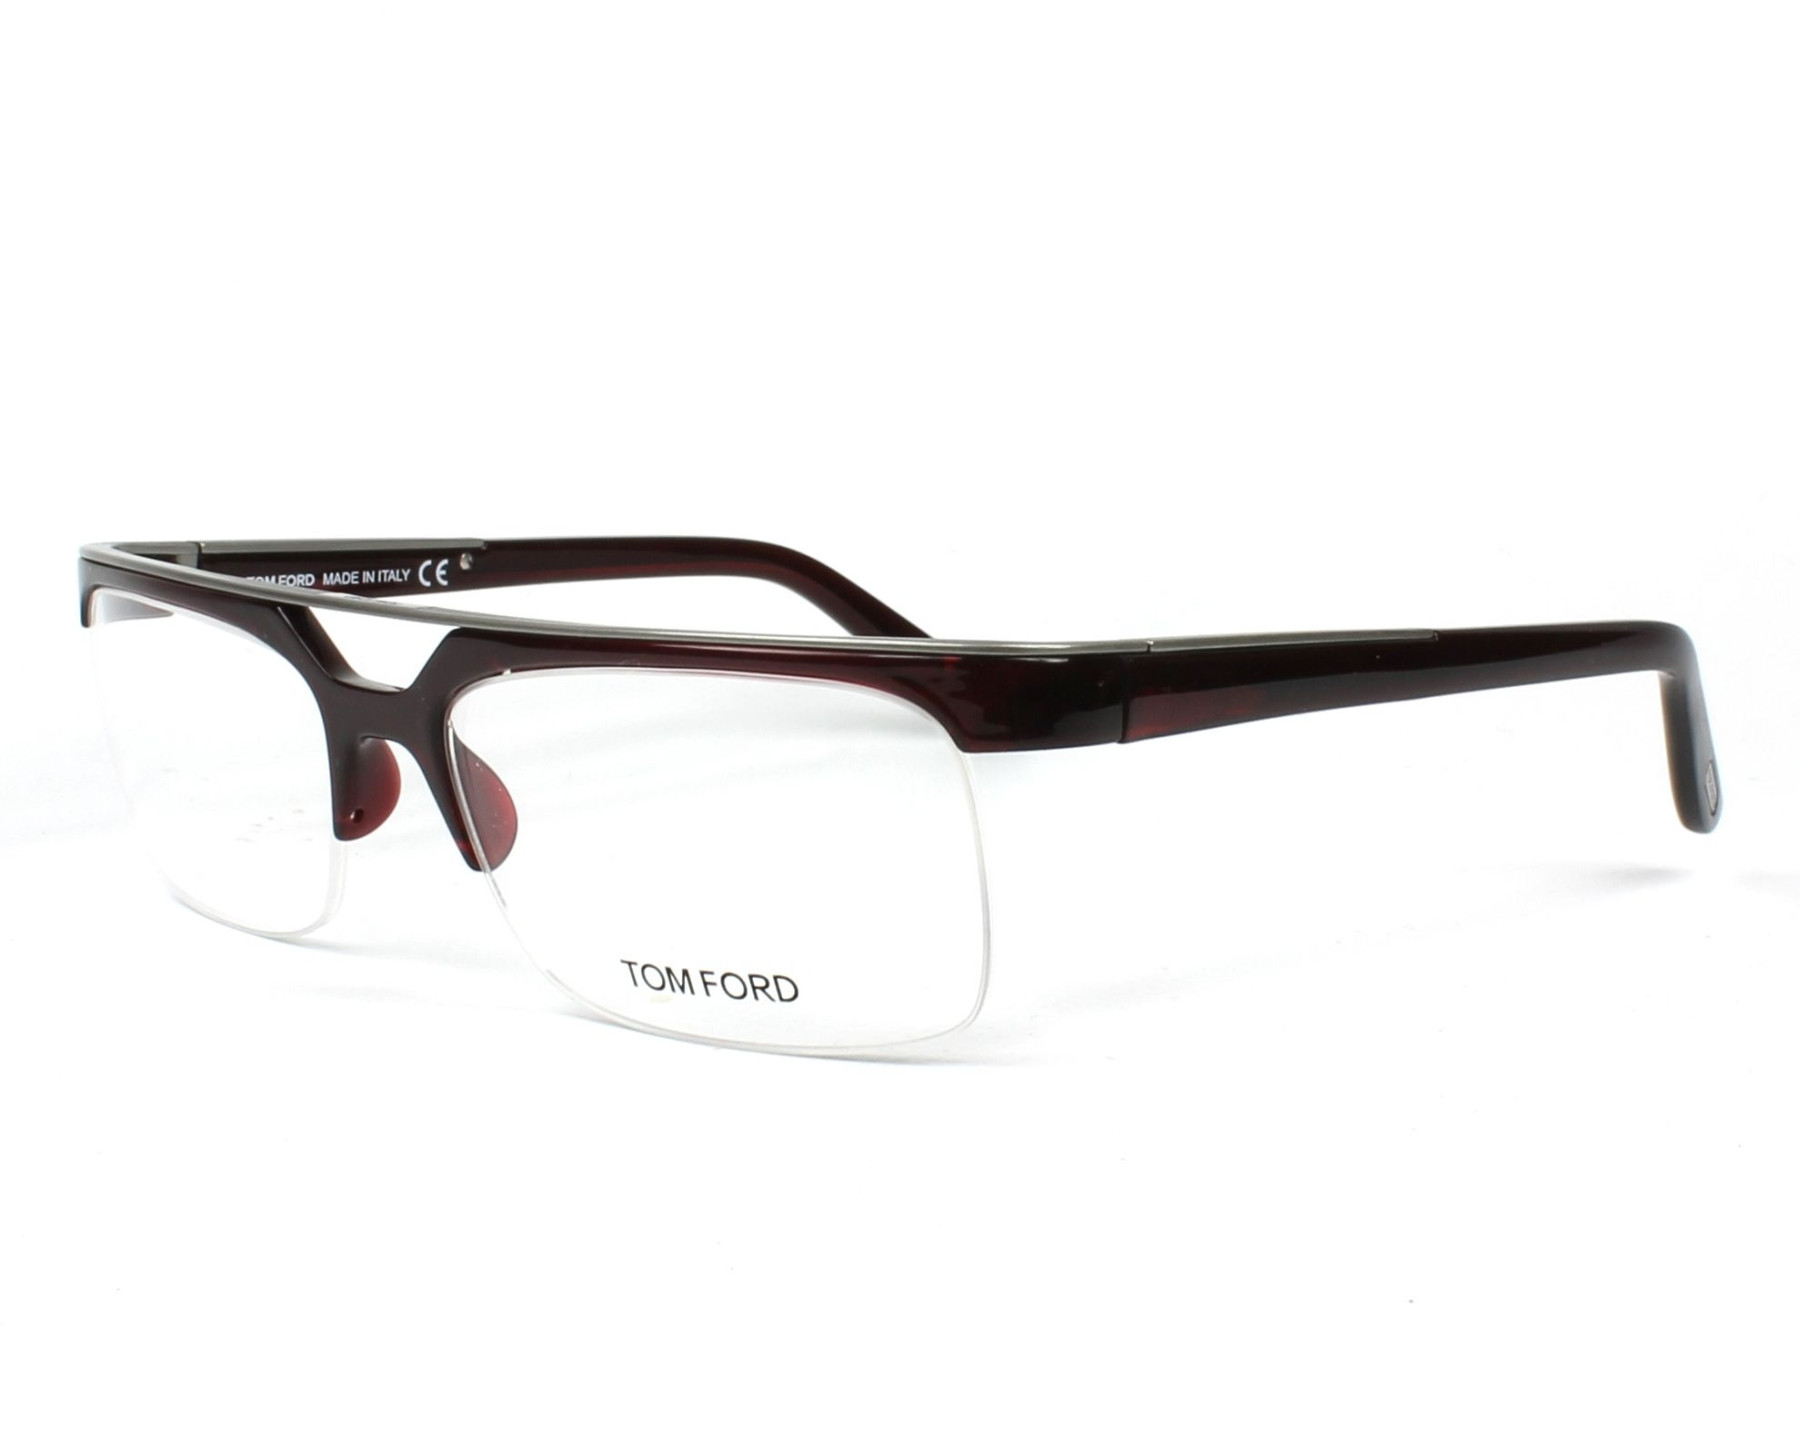 Gafas tom ford Hombre Maravilloso Hombre Gafas Graduadas tom ford Tf 5069 211 Bordeaux Gun Of 38  Adorable Gafas tom ford Hombre